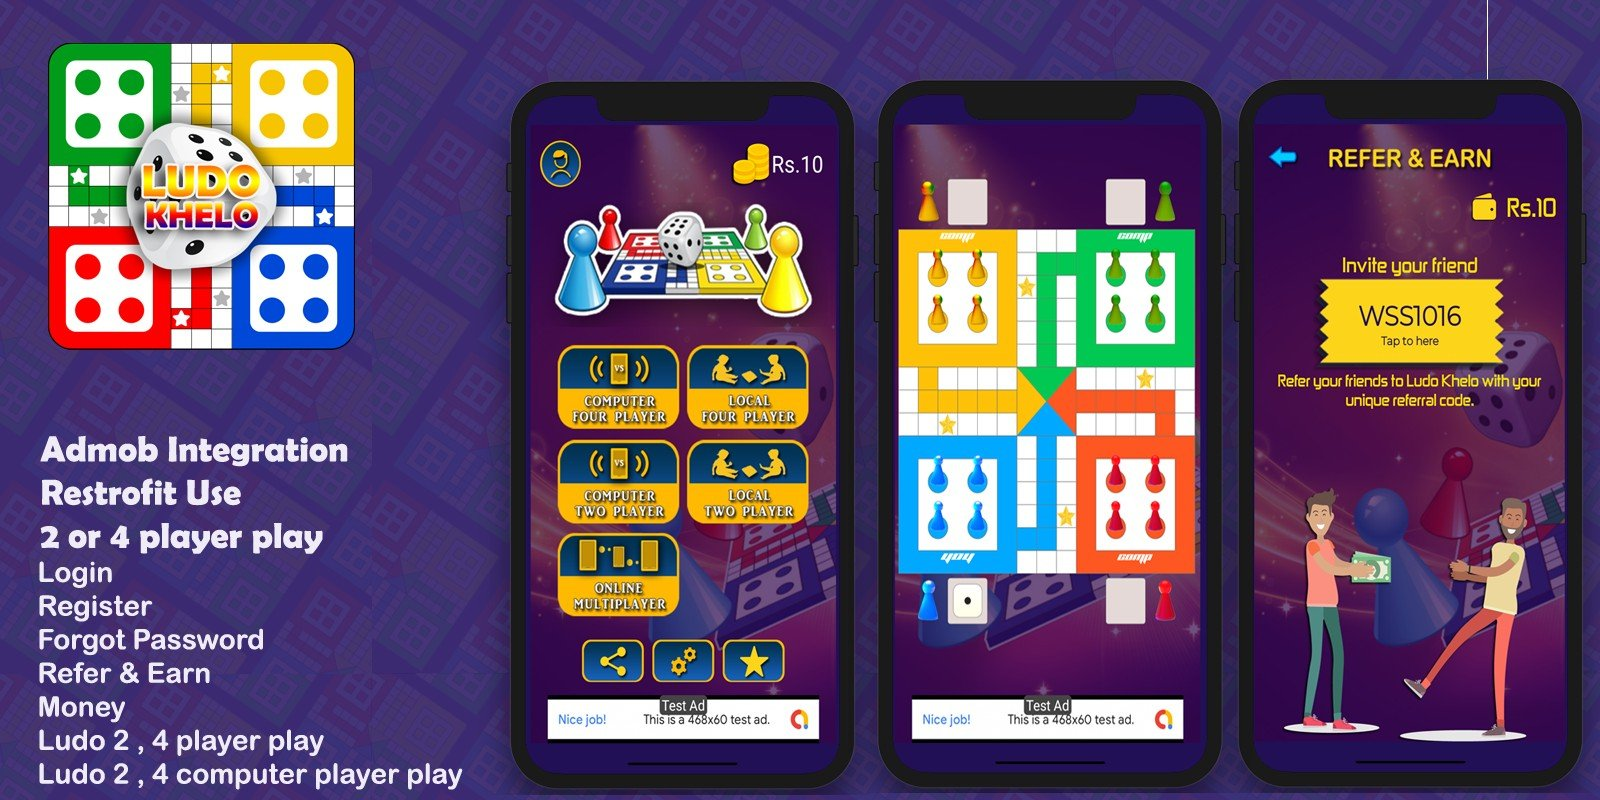 Ludo Khelo Game - Android Studio Source Code